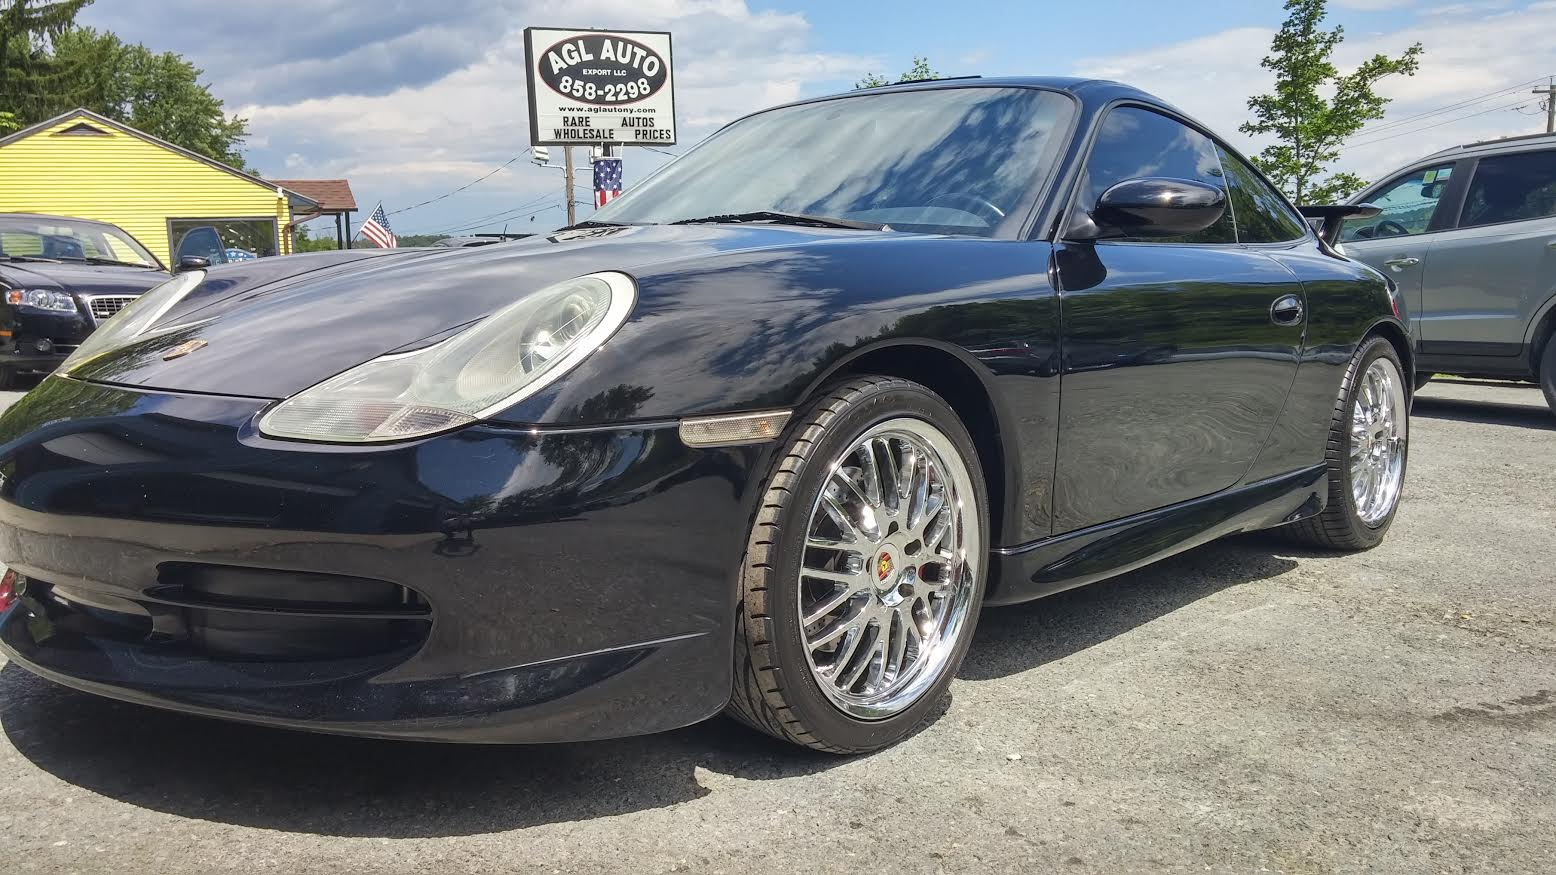 Porsche Clifton Park >> AGL Auto Latham NY Porsche - Capital Reviews Directory